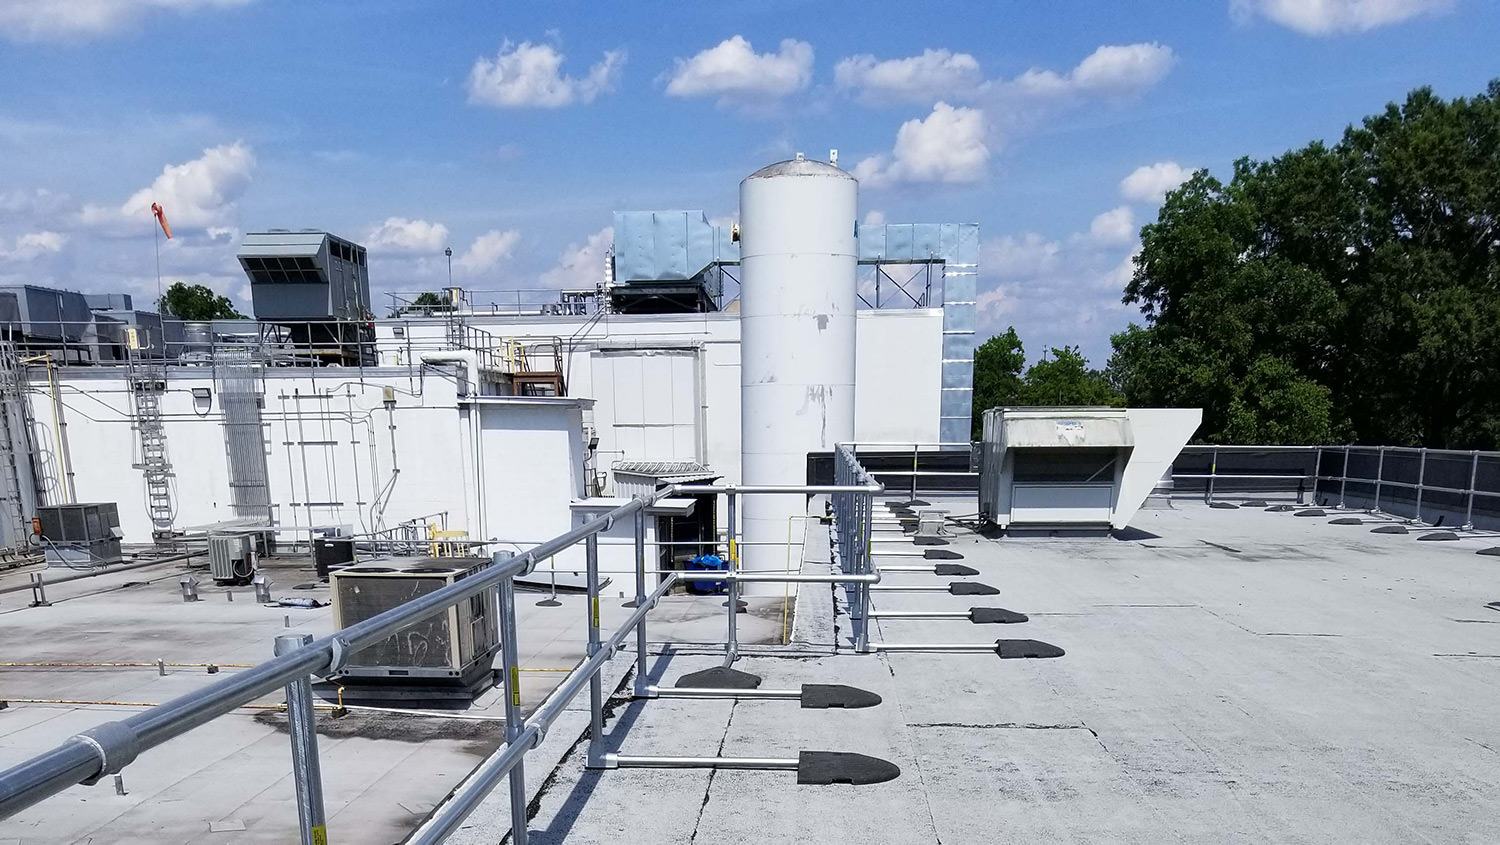 Safety Railing for Fall Protection in Food Processing